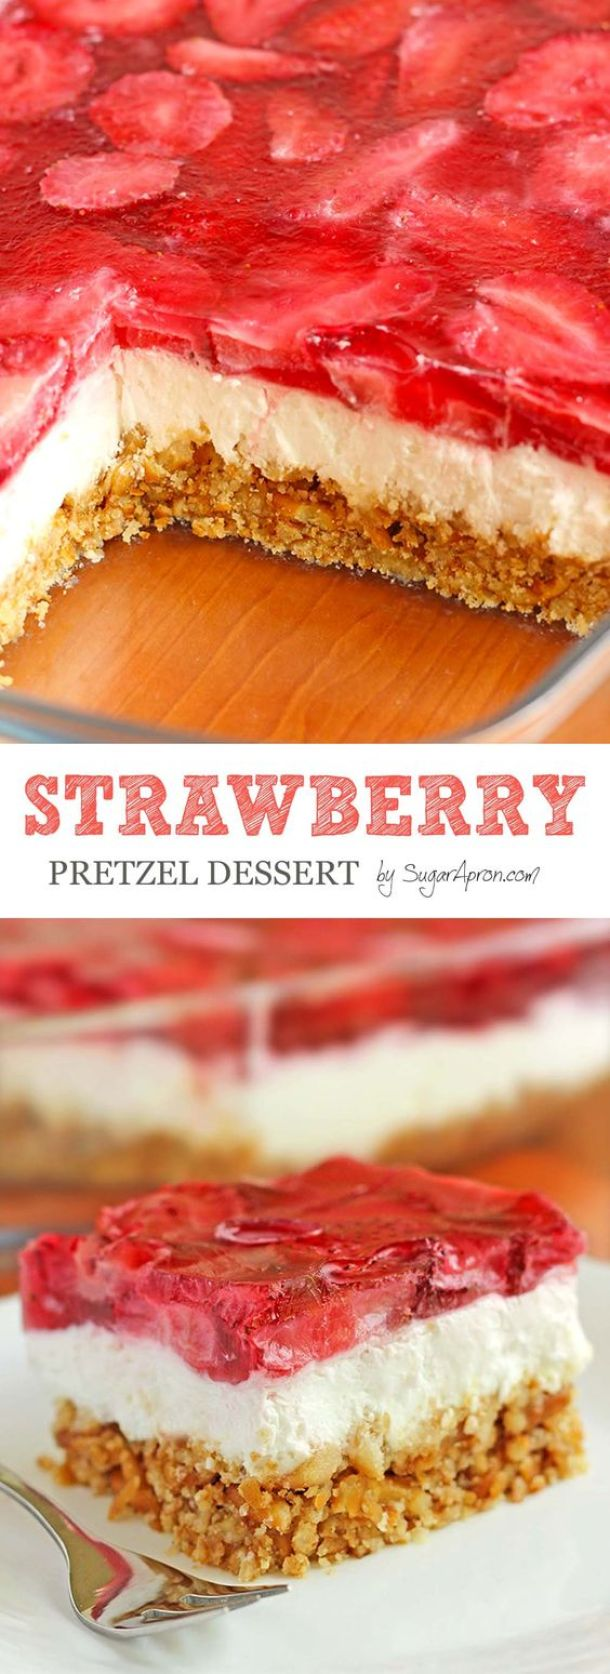 Strawberry Pretzel Dessert Recipe | Sugar Apron - The BEST Classic, Improved and Traditional Thanksgiving Dinner Menu Favorites Recipes - Main Dishes, Side Dishes, Appetizers, Salads, Yummy Desserts and more!